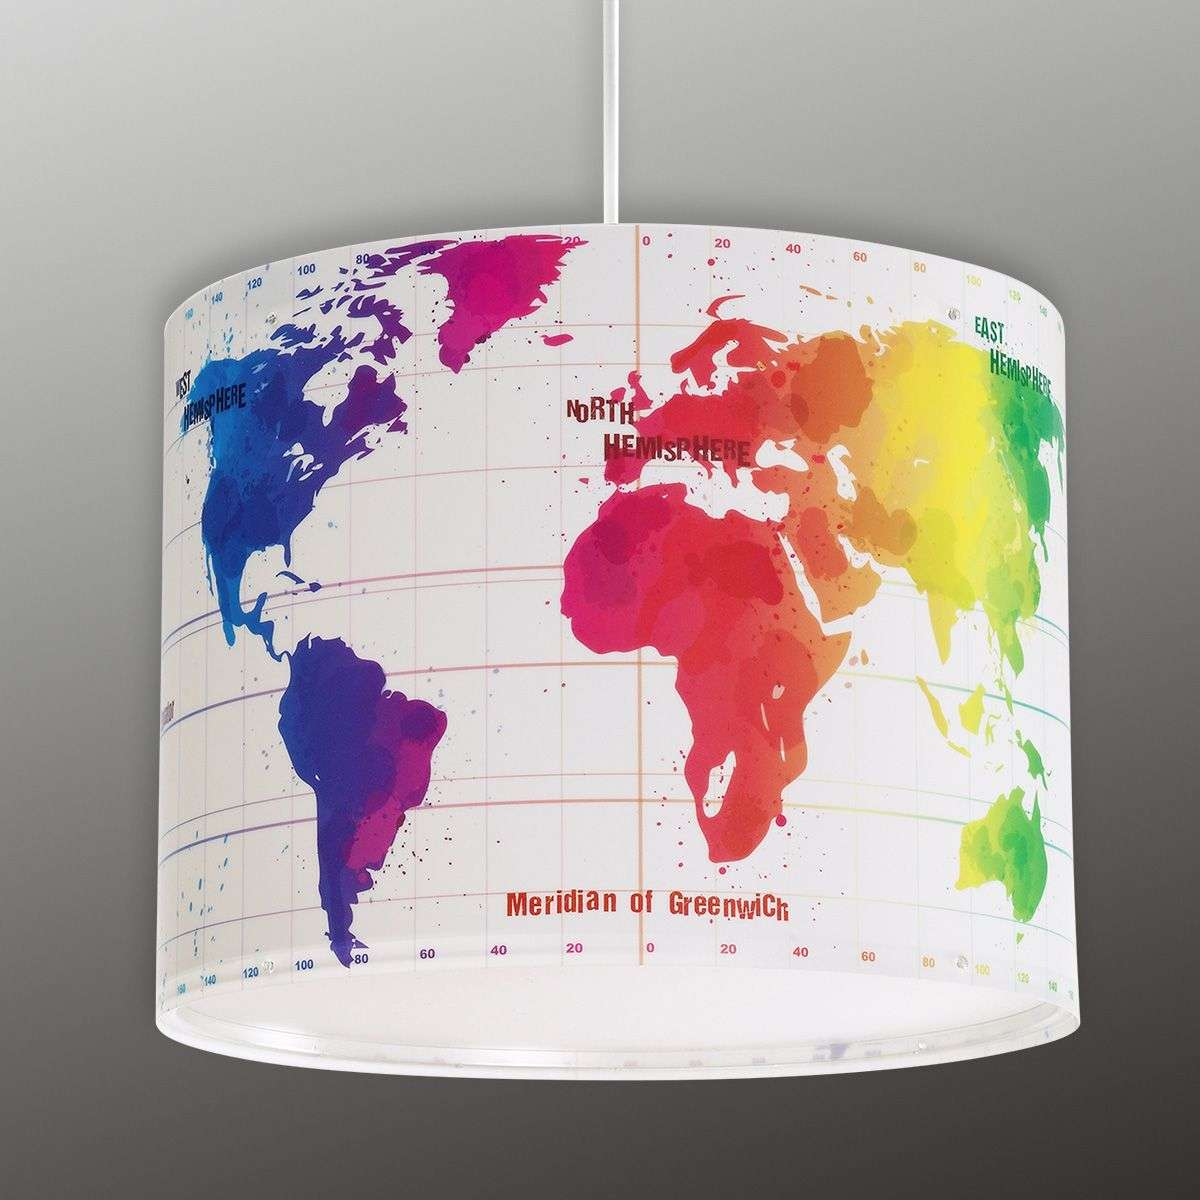 Childrens room hanging light map with world map lights childrens room hanging light map with world map 2507315 31 gumiabroncs Choice Image